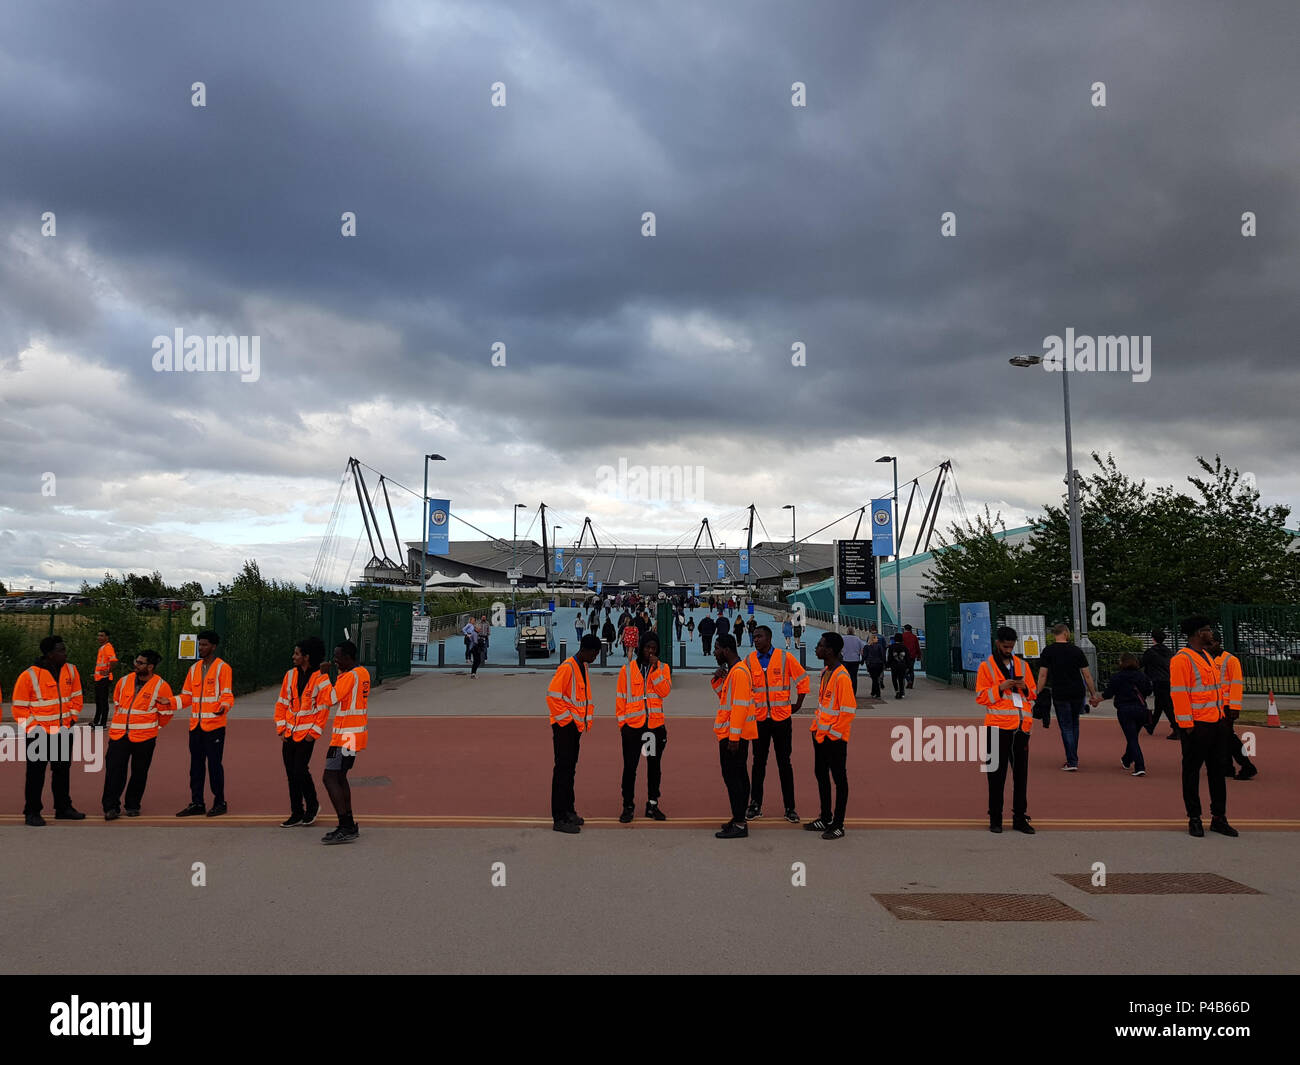 Manchester, England, UK, June 19, 2018: Security people for the Foo Fighters Concert in the Etihad Stadium. - Stock Image